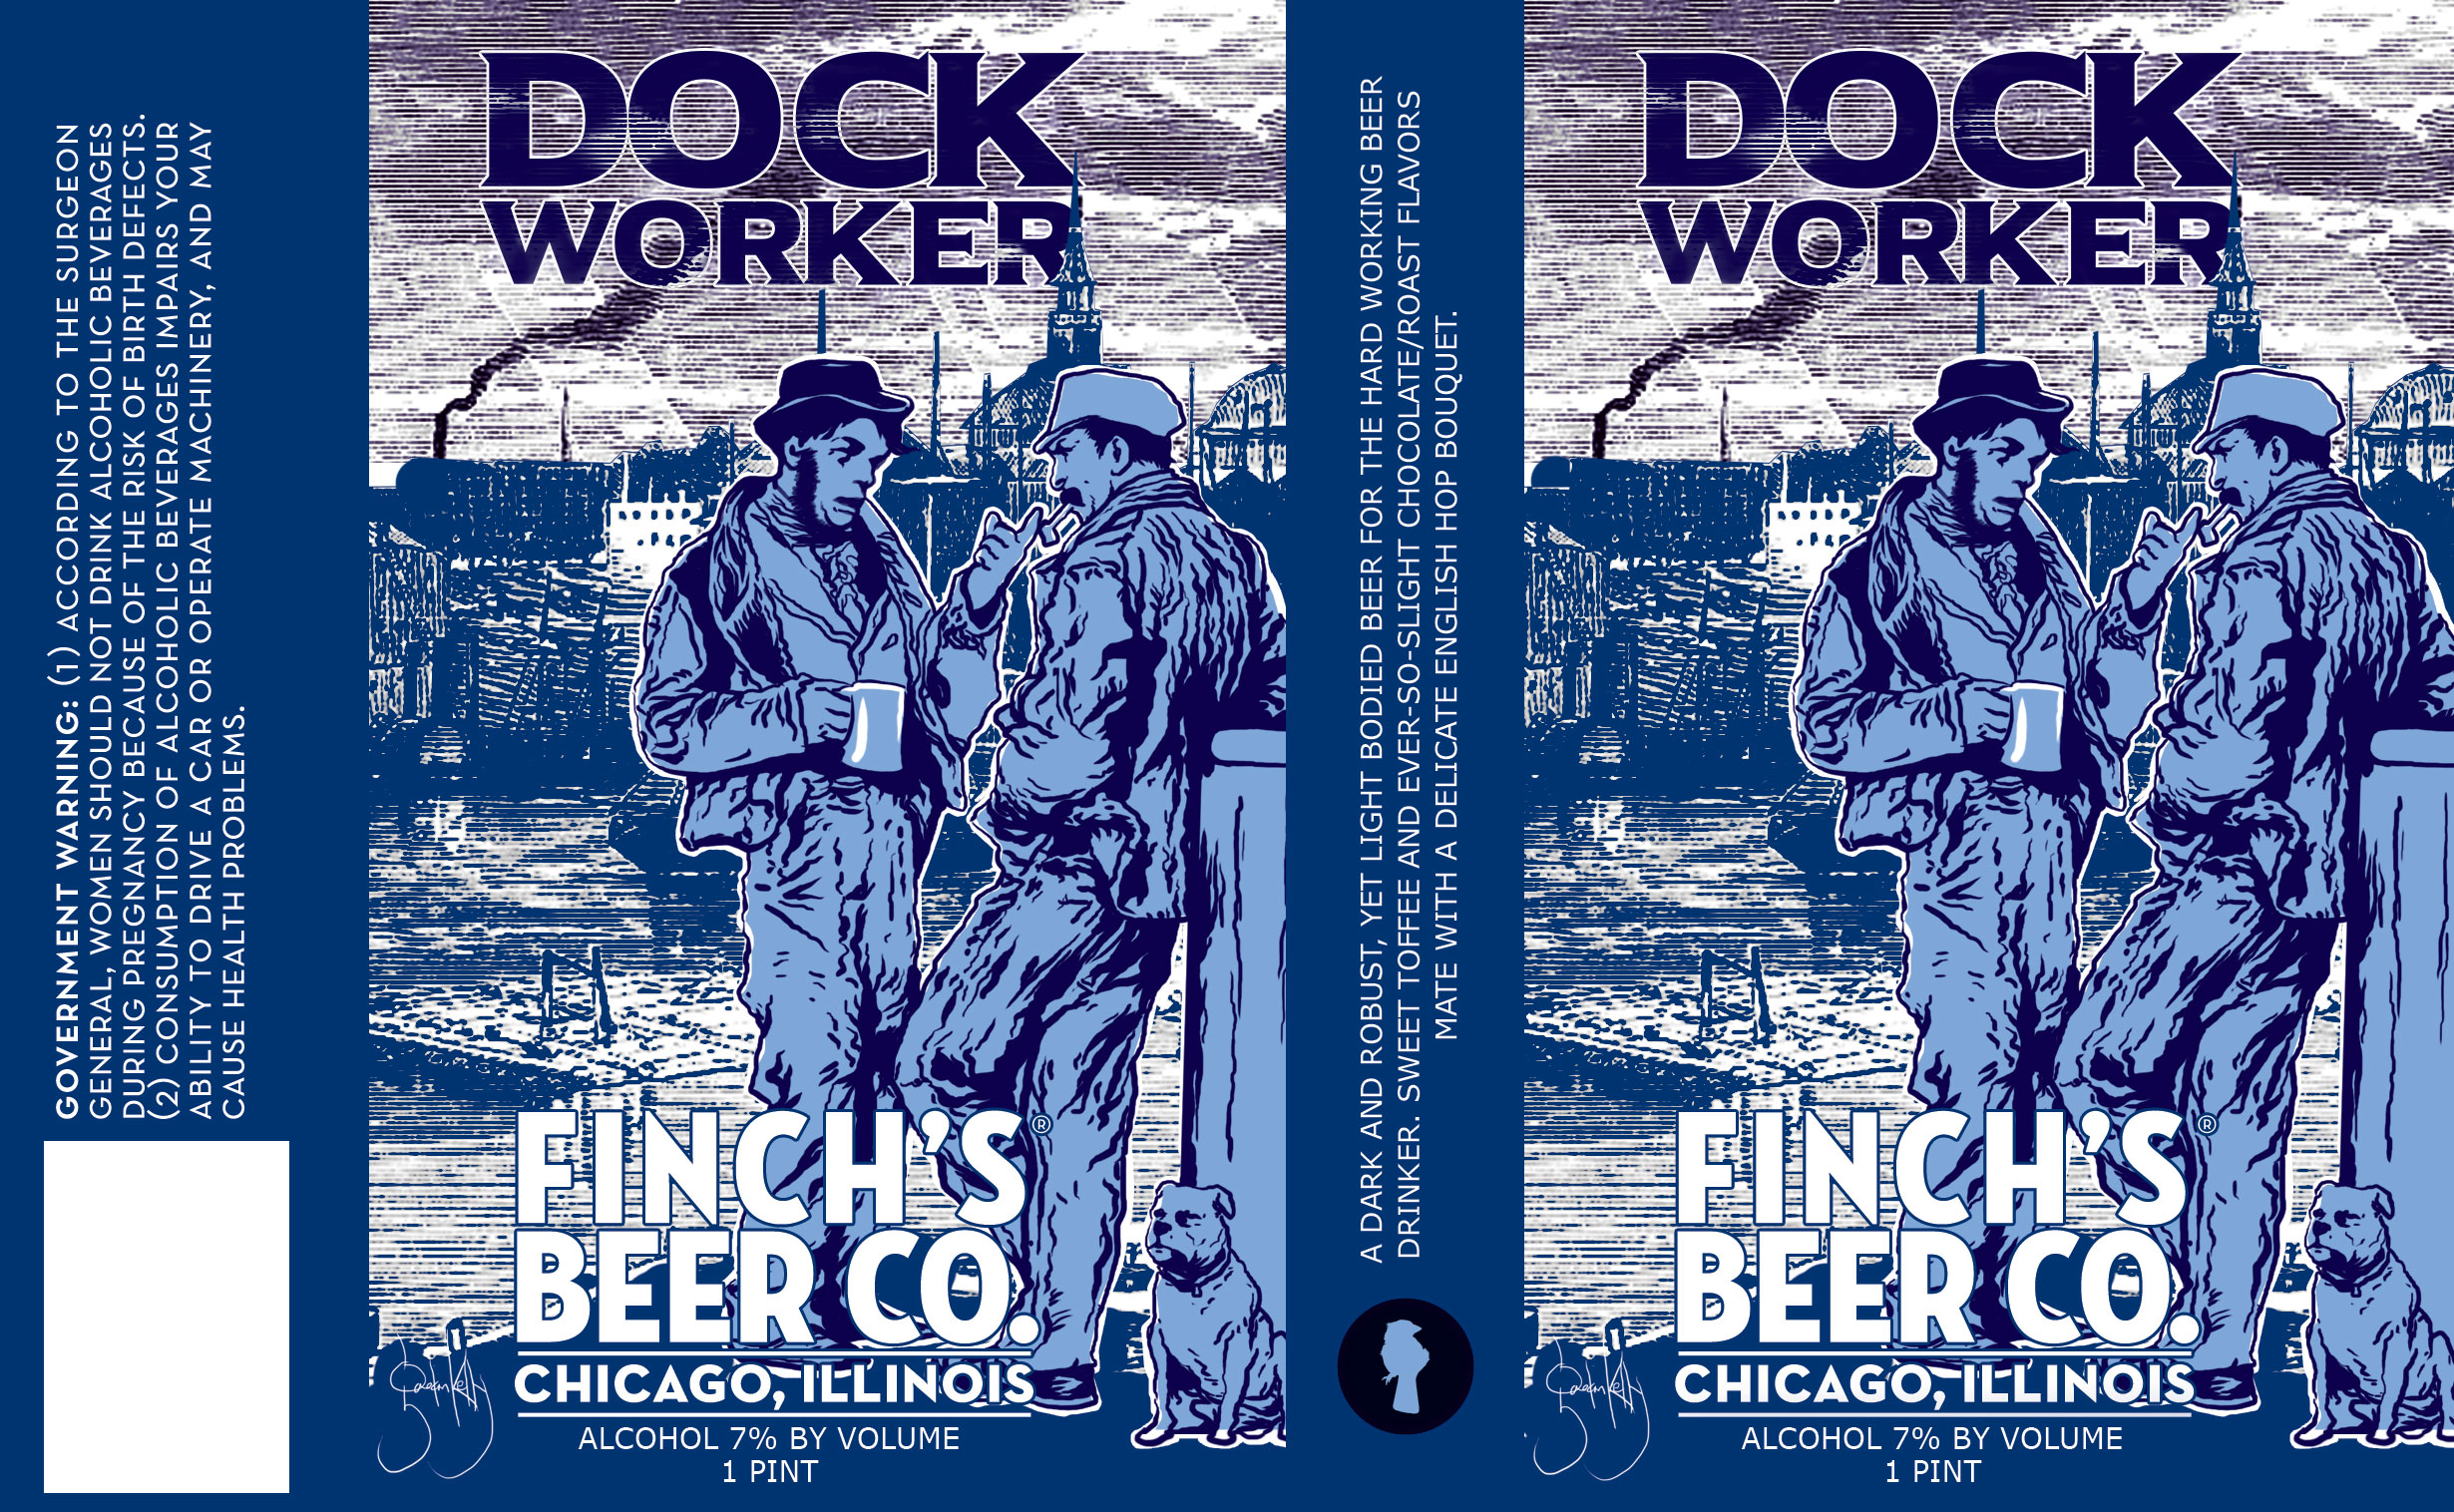 Dock Worker label design by Gaelan Kelly